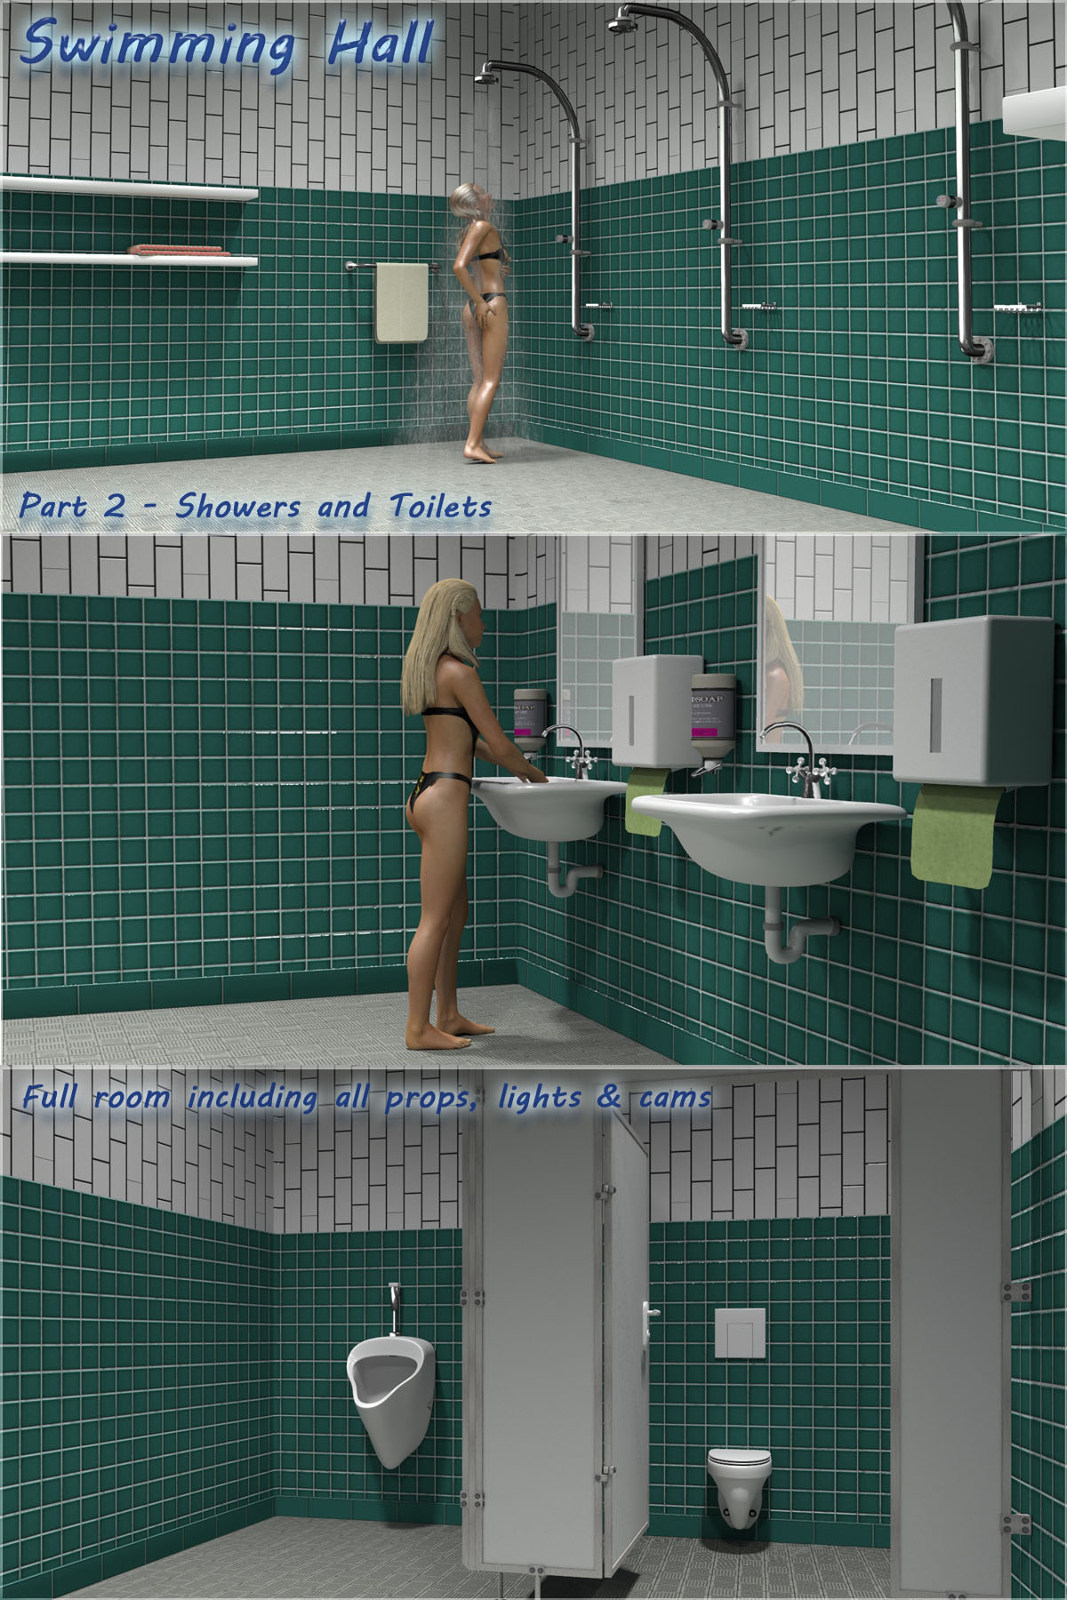 Swimming Hall Part 2 - Toilets and Showers by 3-d-c